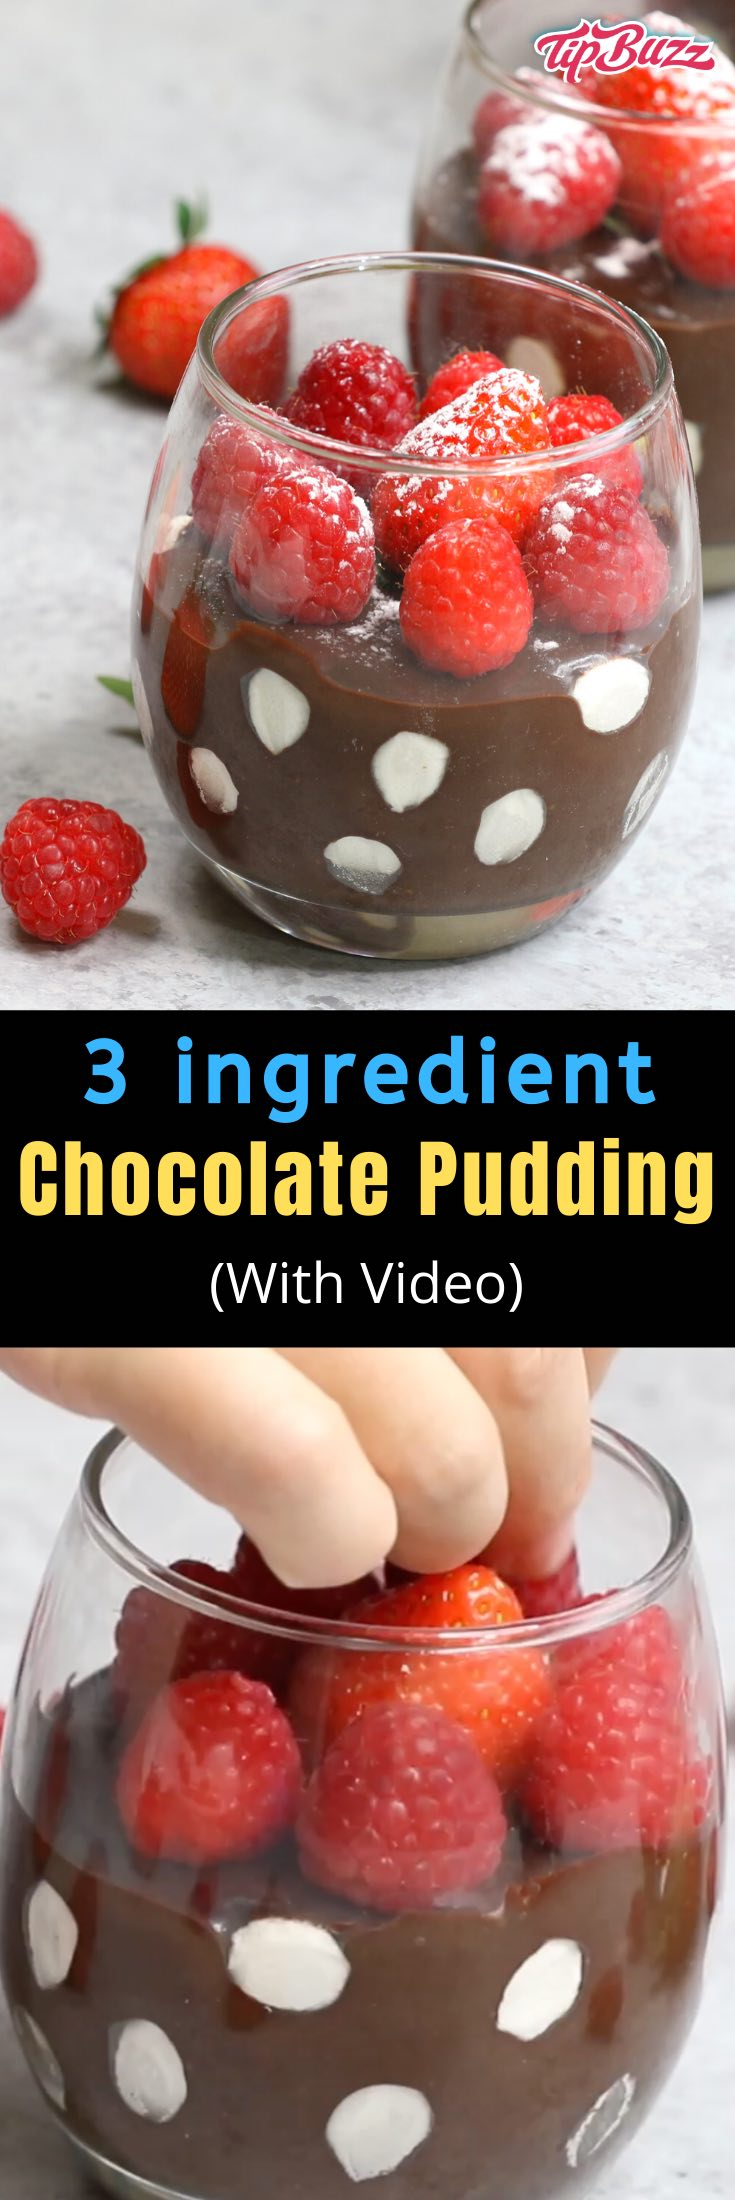 Chocolate Pudding with polka dot marshmallows is a no-bake dessert that's easy and fun to make with just 3 ingredients! All you need is chocolate, cream and marshmallows. Perfect for Mother's Day and Valentine's Day as well as birthdays and parties. #ChocolatePudding #EasyChocolatePudding